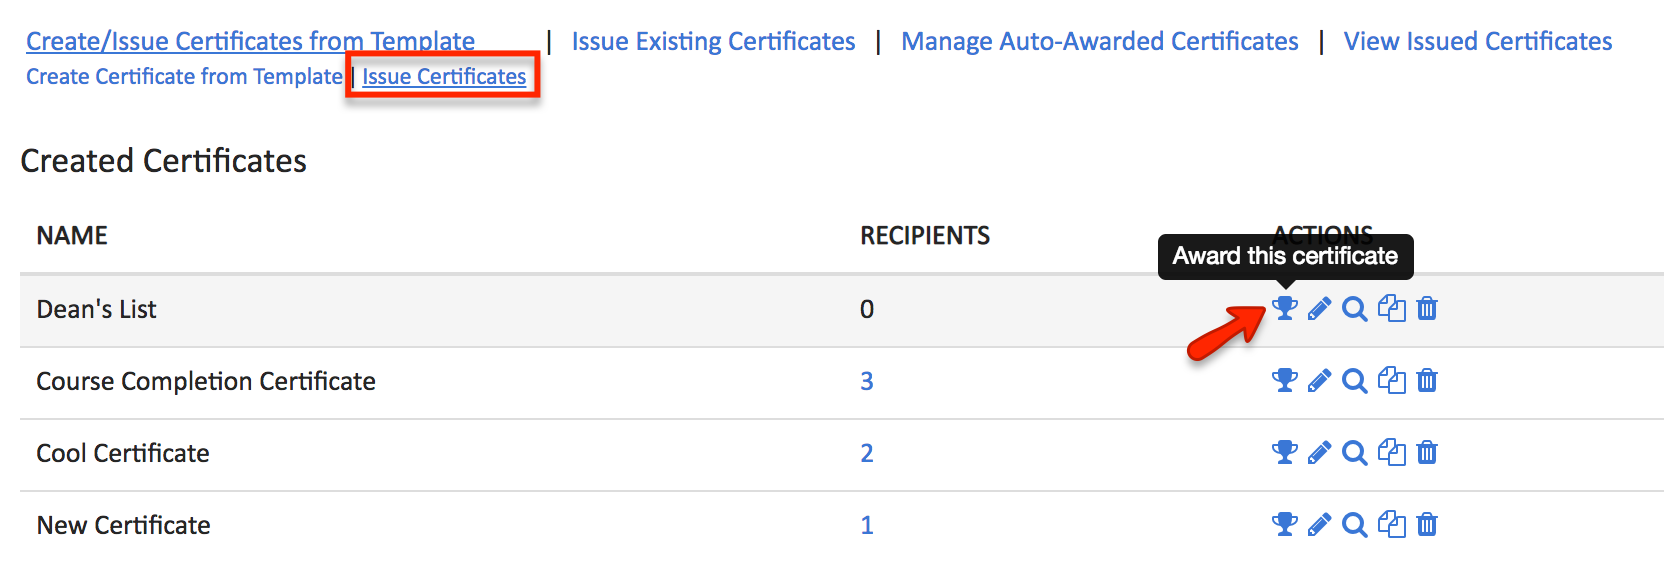 award_certificates.png